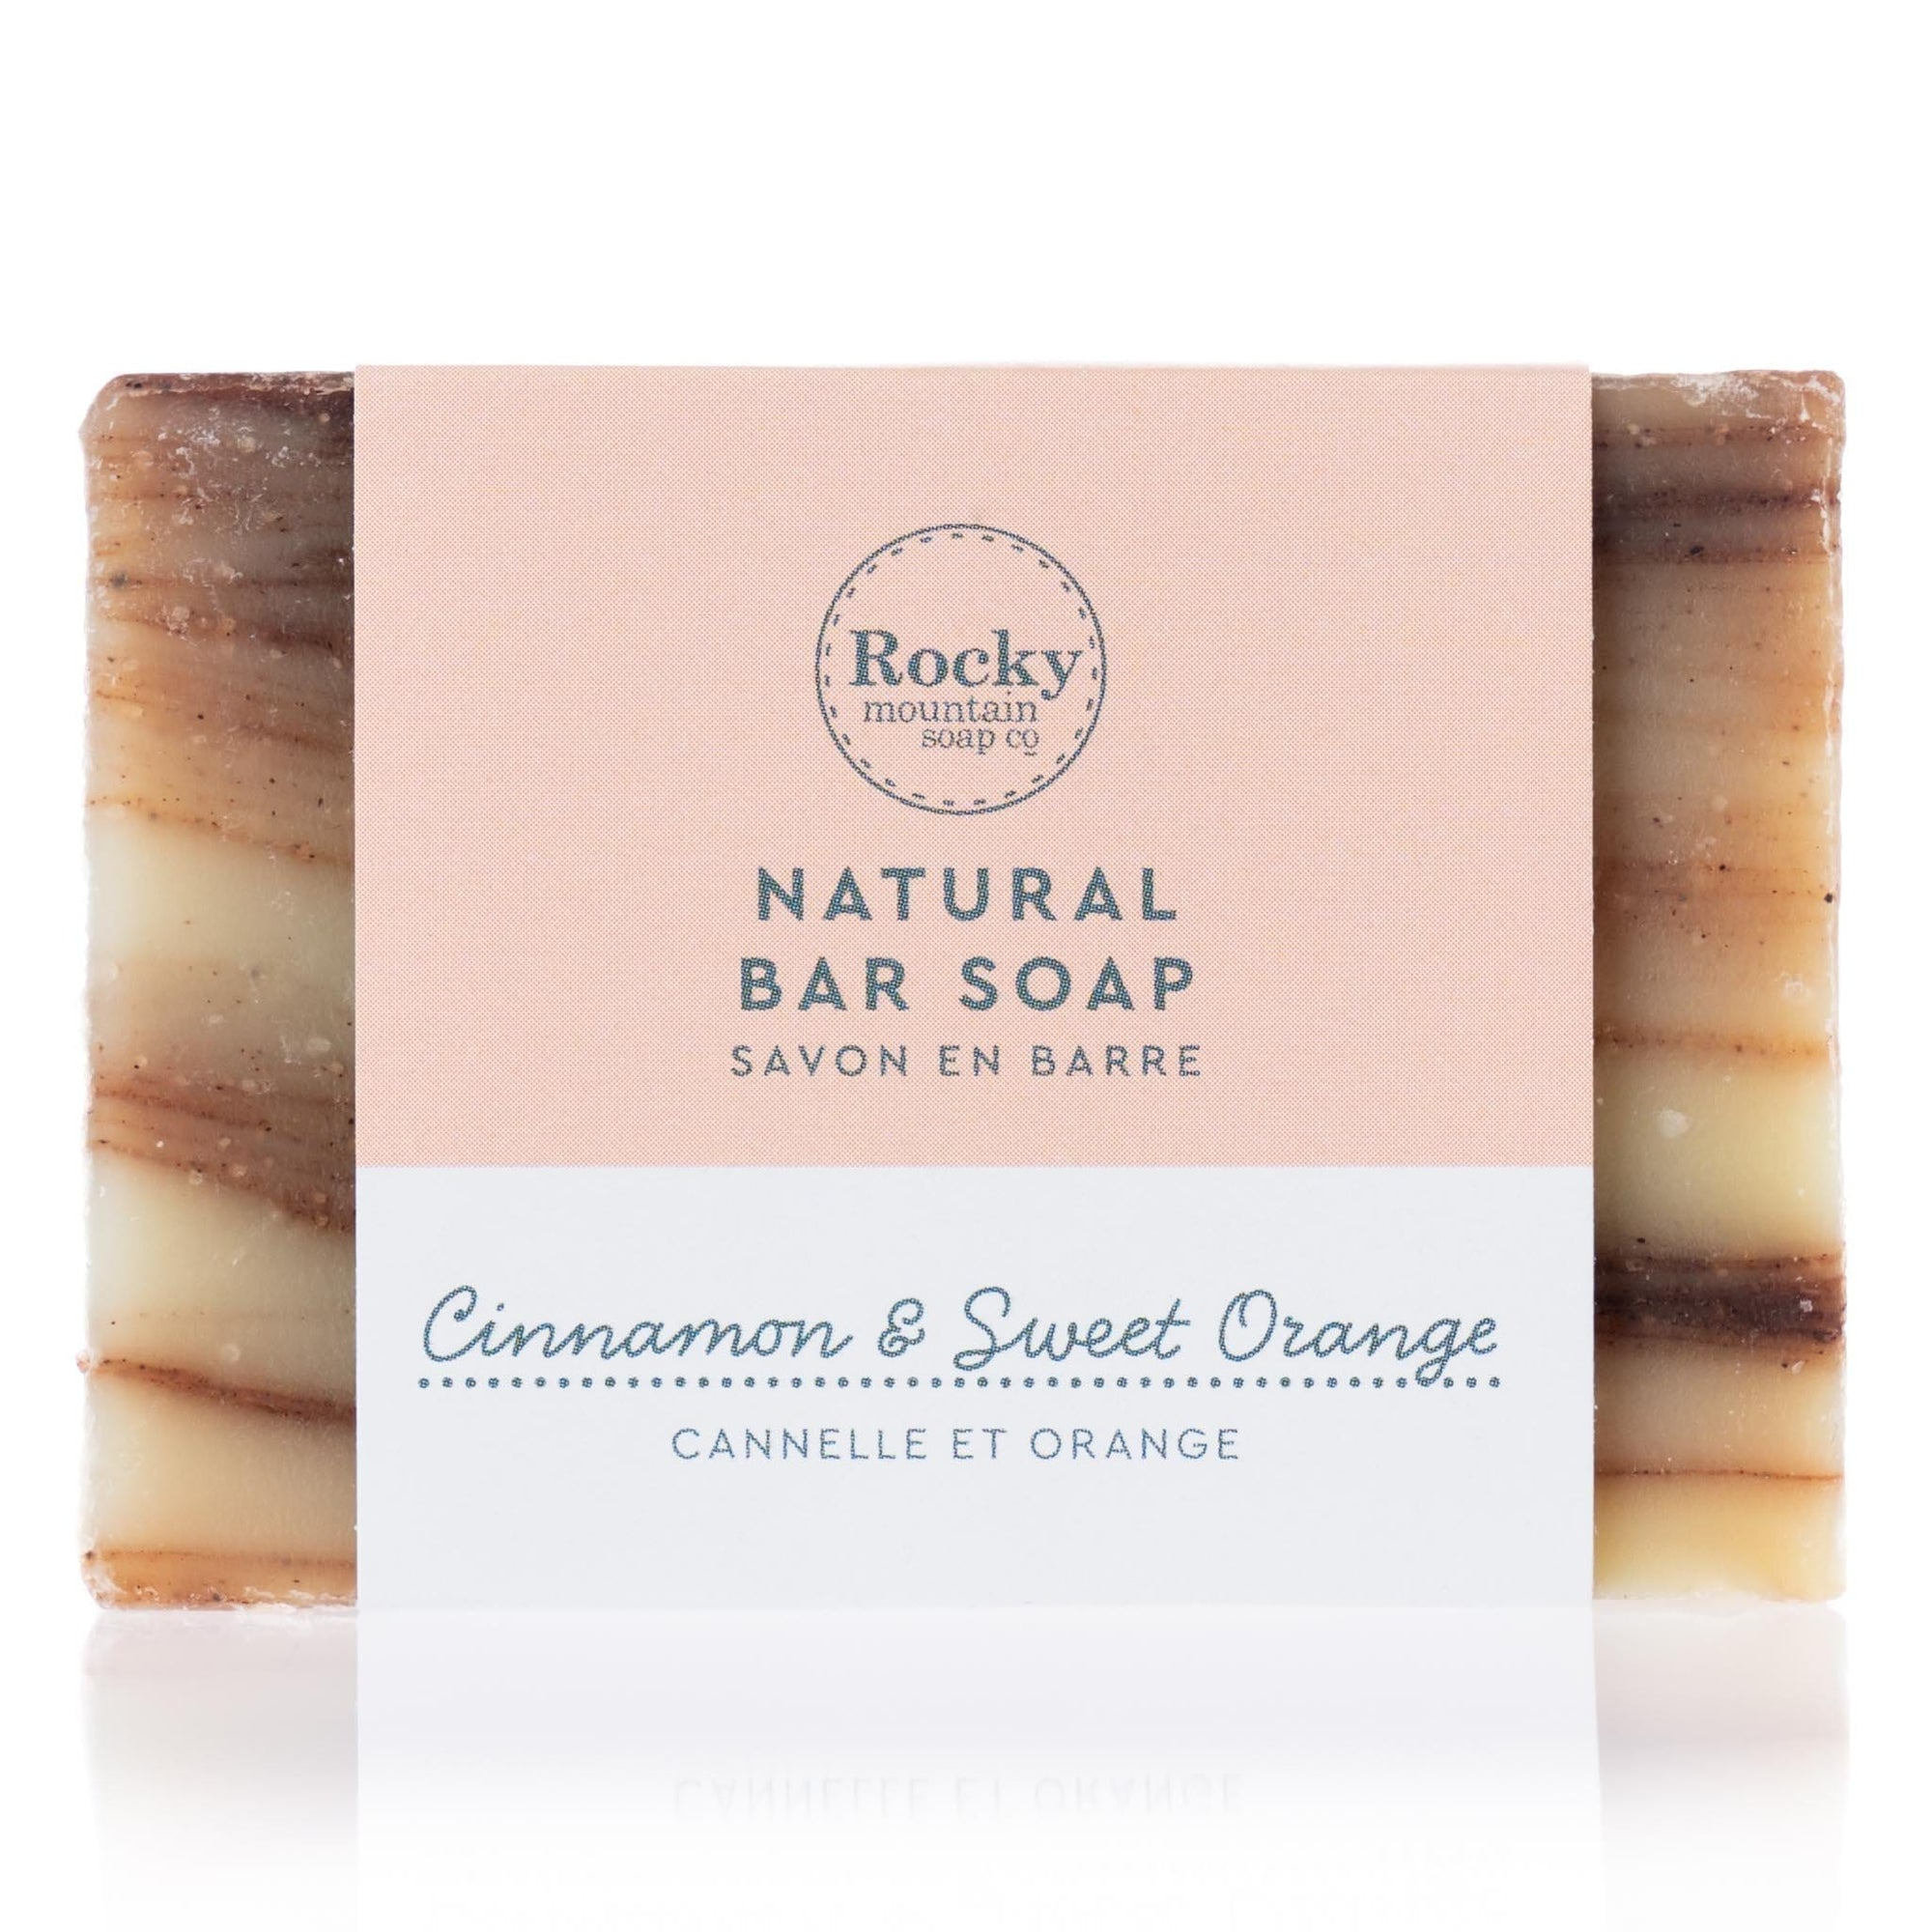 Cinnamon & Sweet Orange Soap